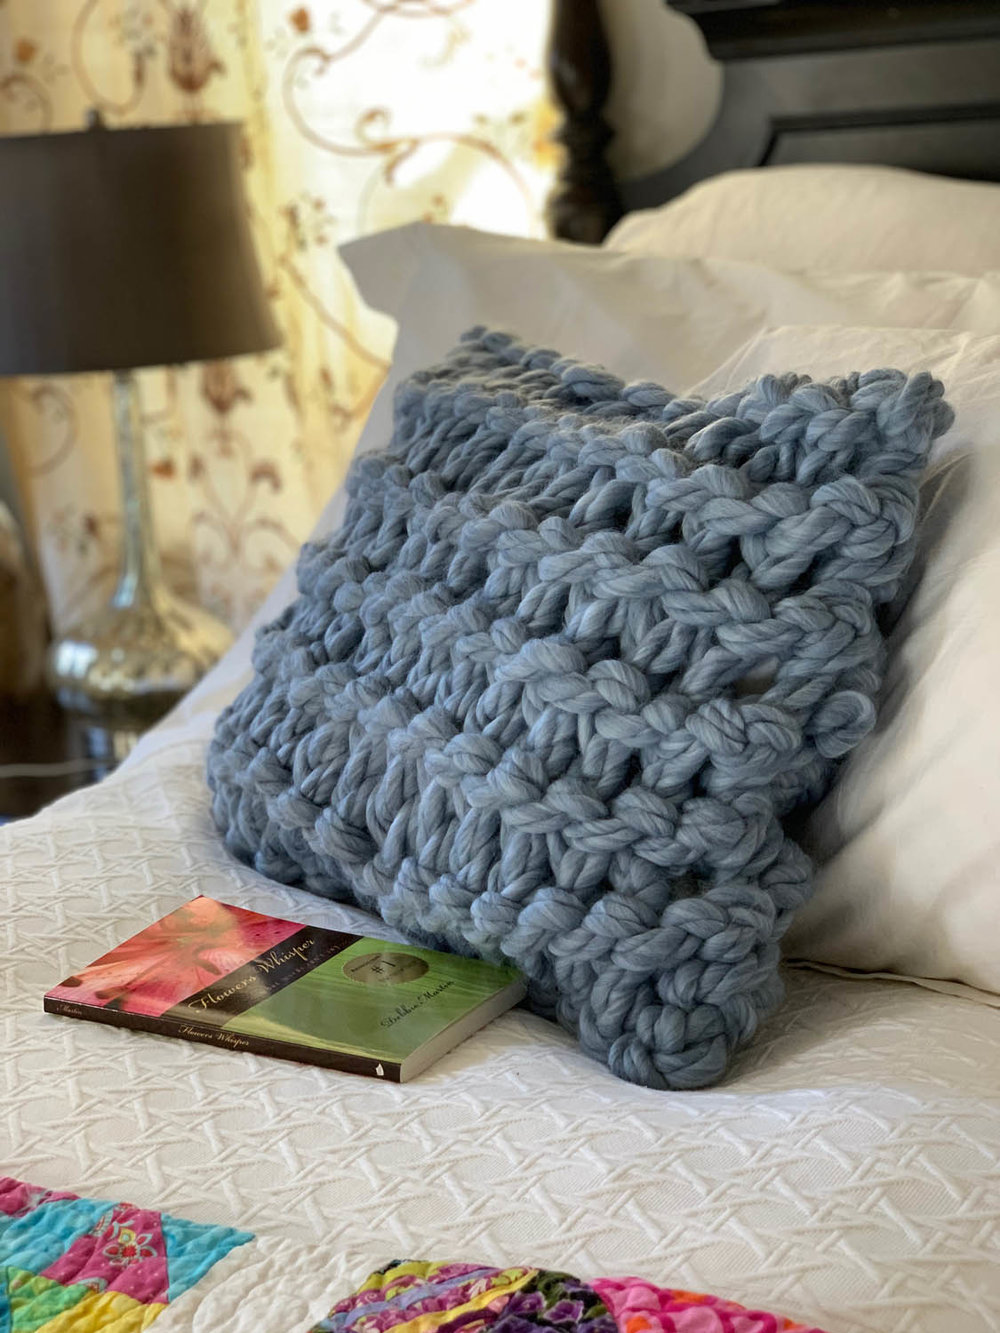 Jumbo Yarn Knit Garter-Stitched Pillow on a bed with quilt